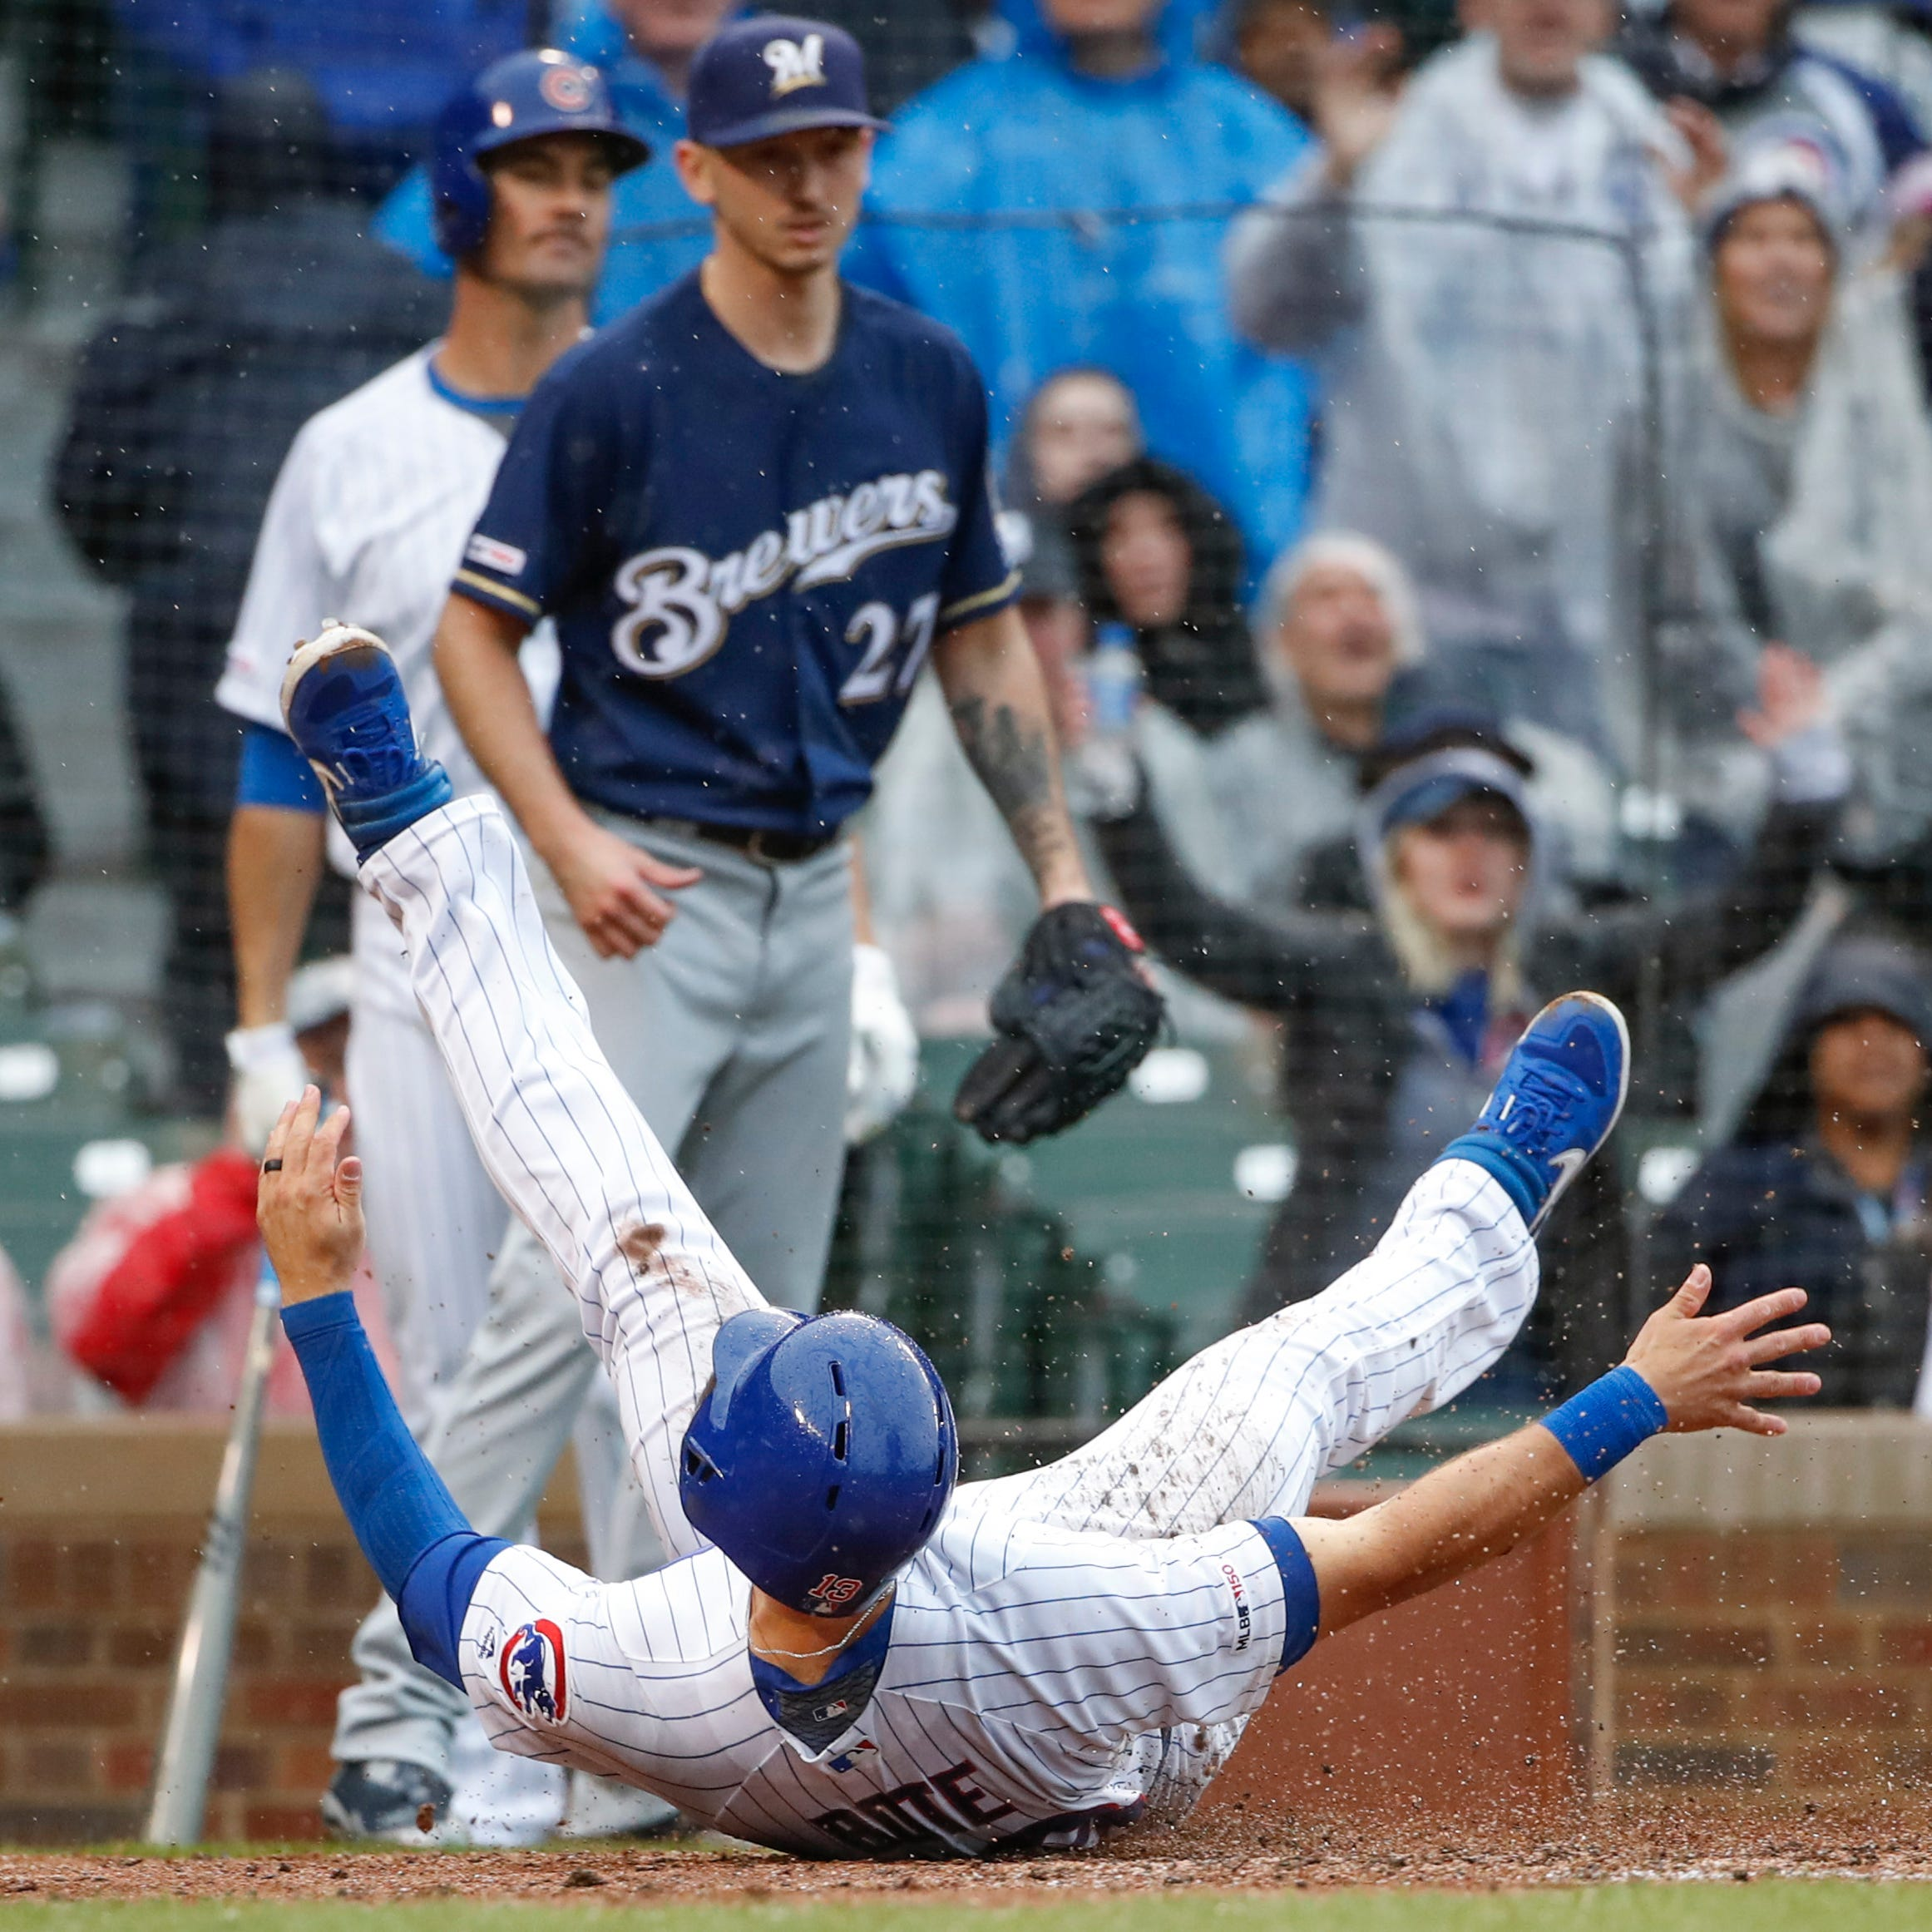 Two early plays loomed large in yet another memorable game between the Brewers and Cubs